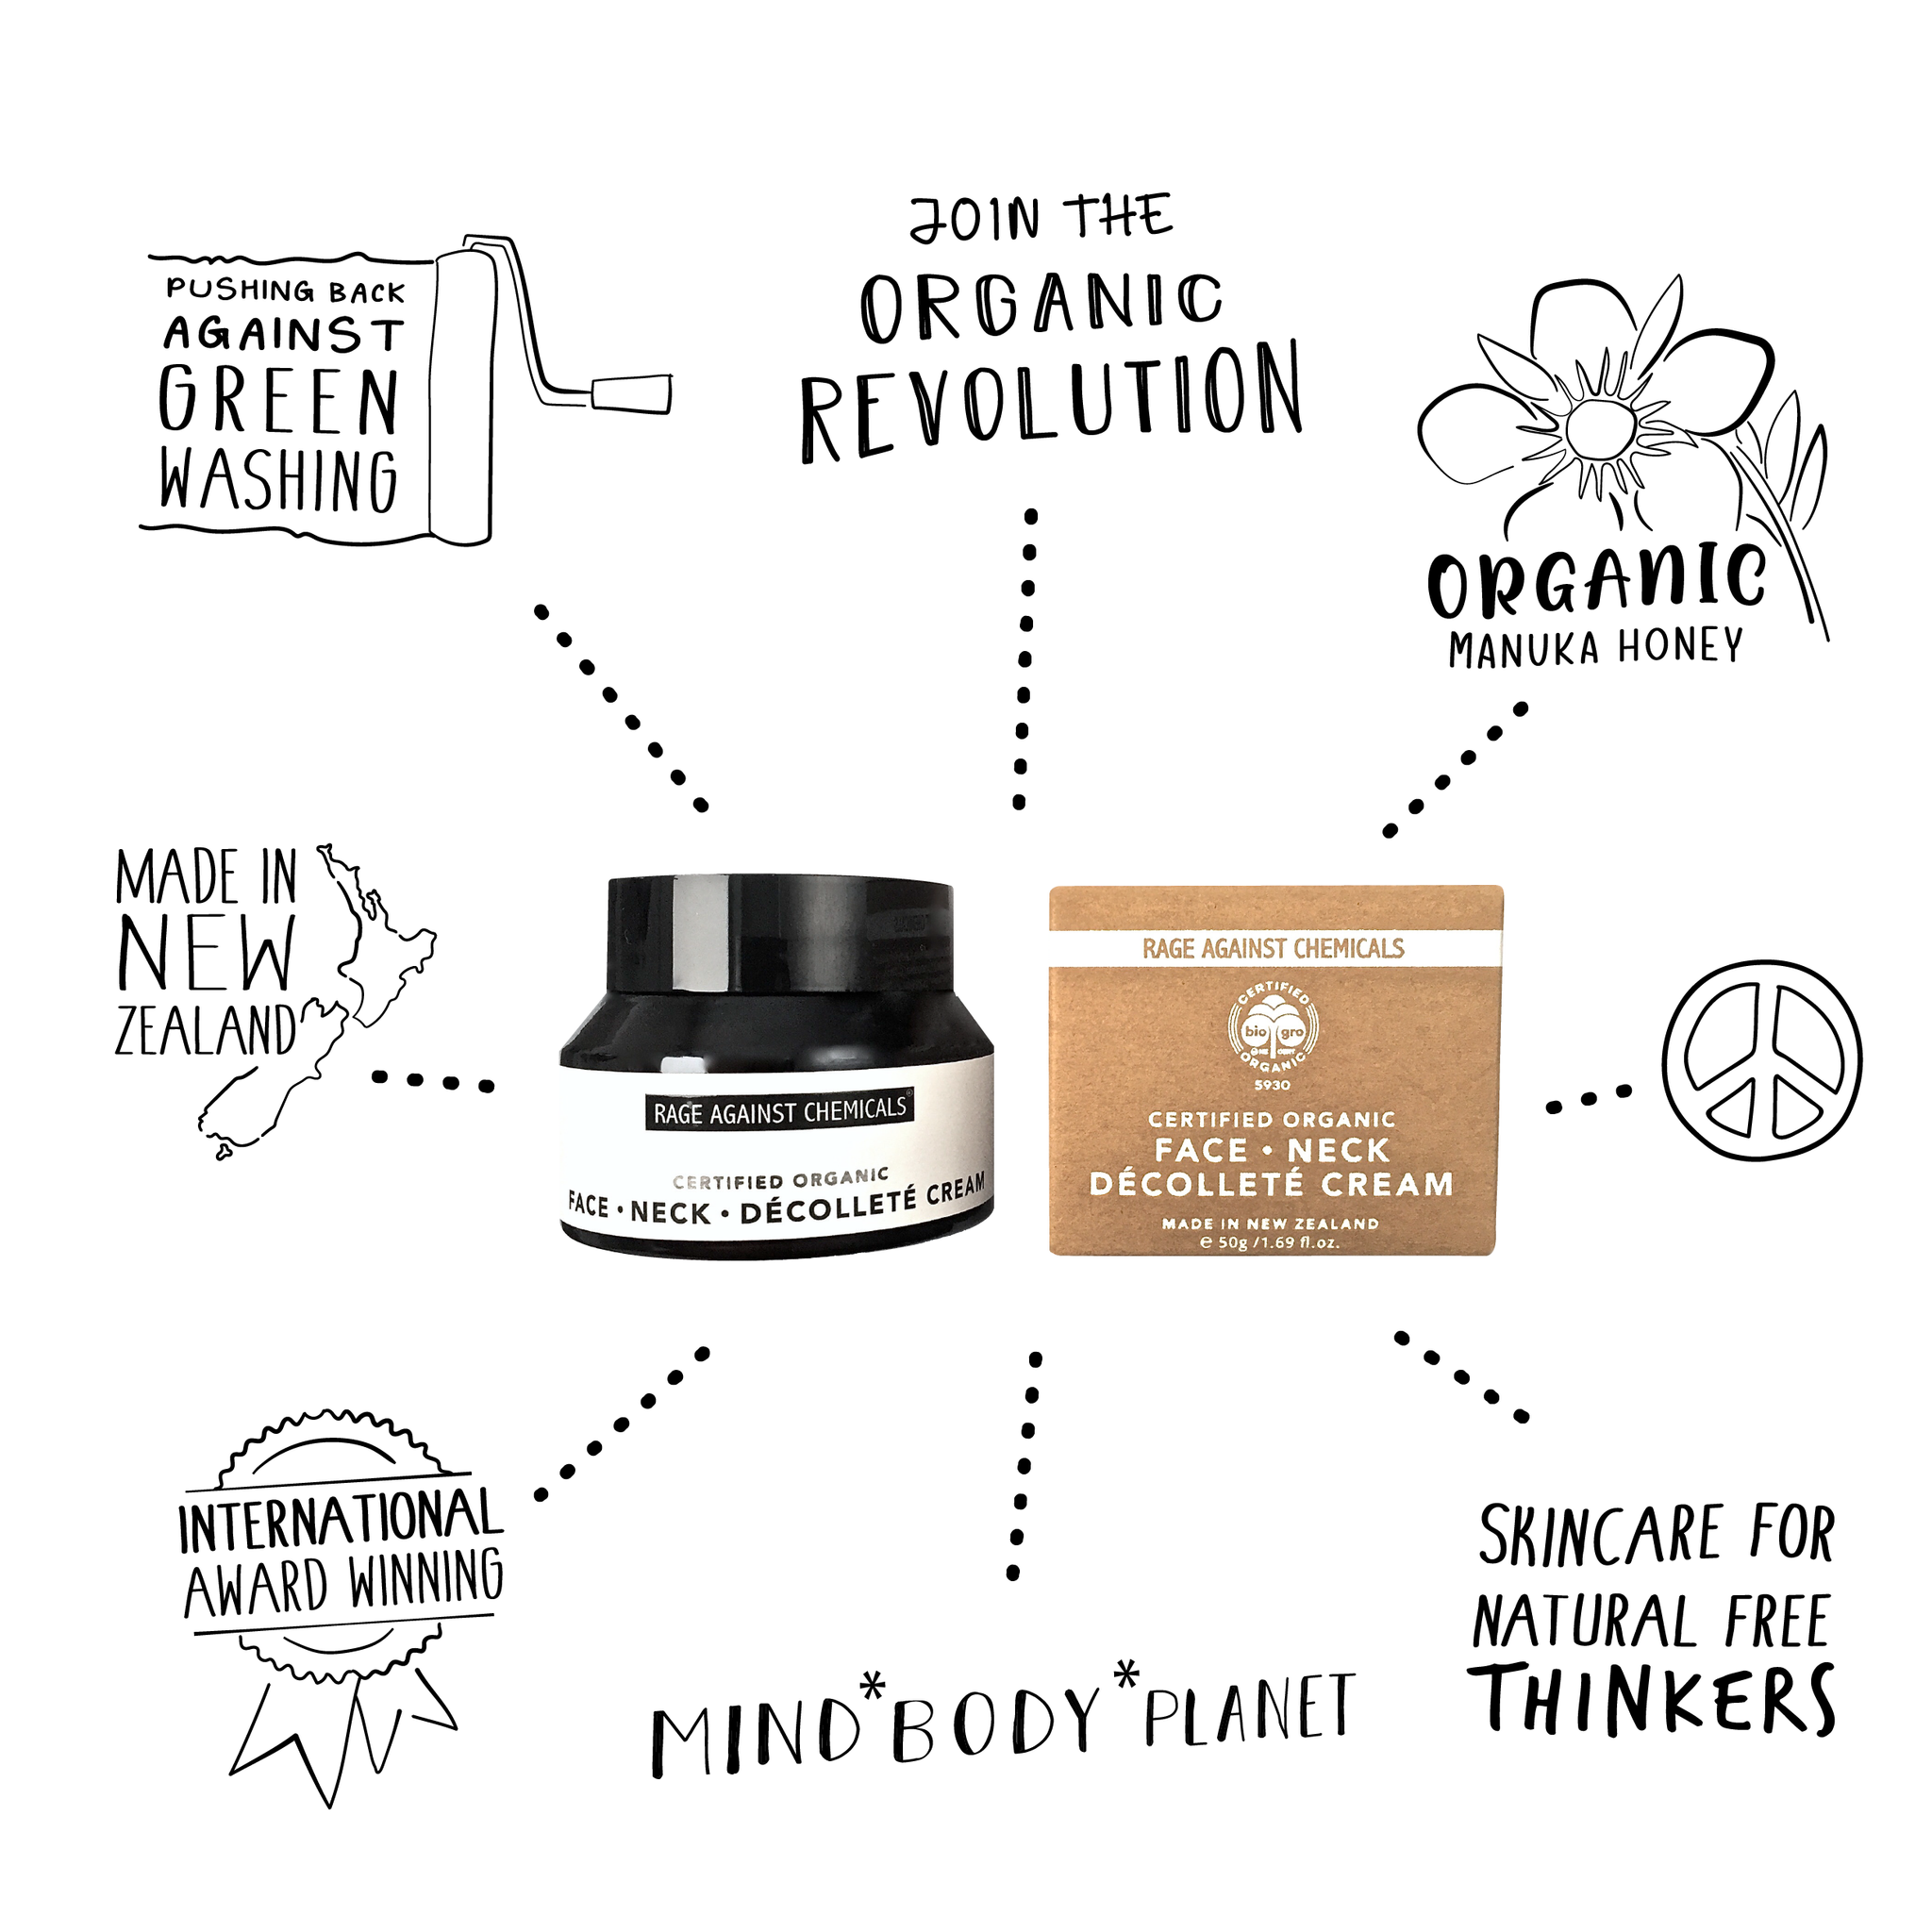 Face, Neck, Decollete Cream - Organic Moisturiser - Certified Organic Skincare  Rage Against Chemicals